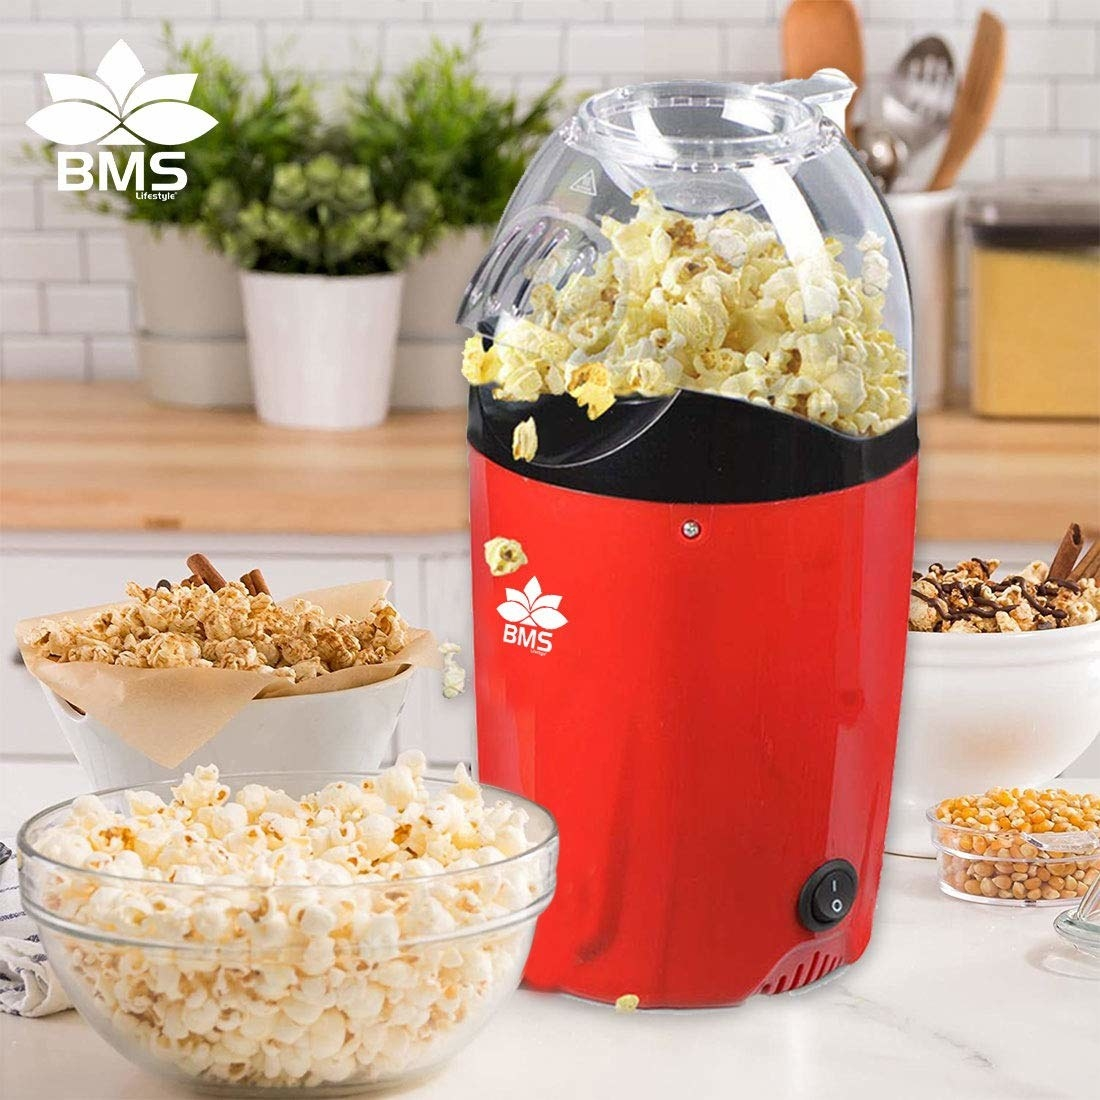 The machine with bowls of popcorn and kernels kept around it.